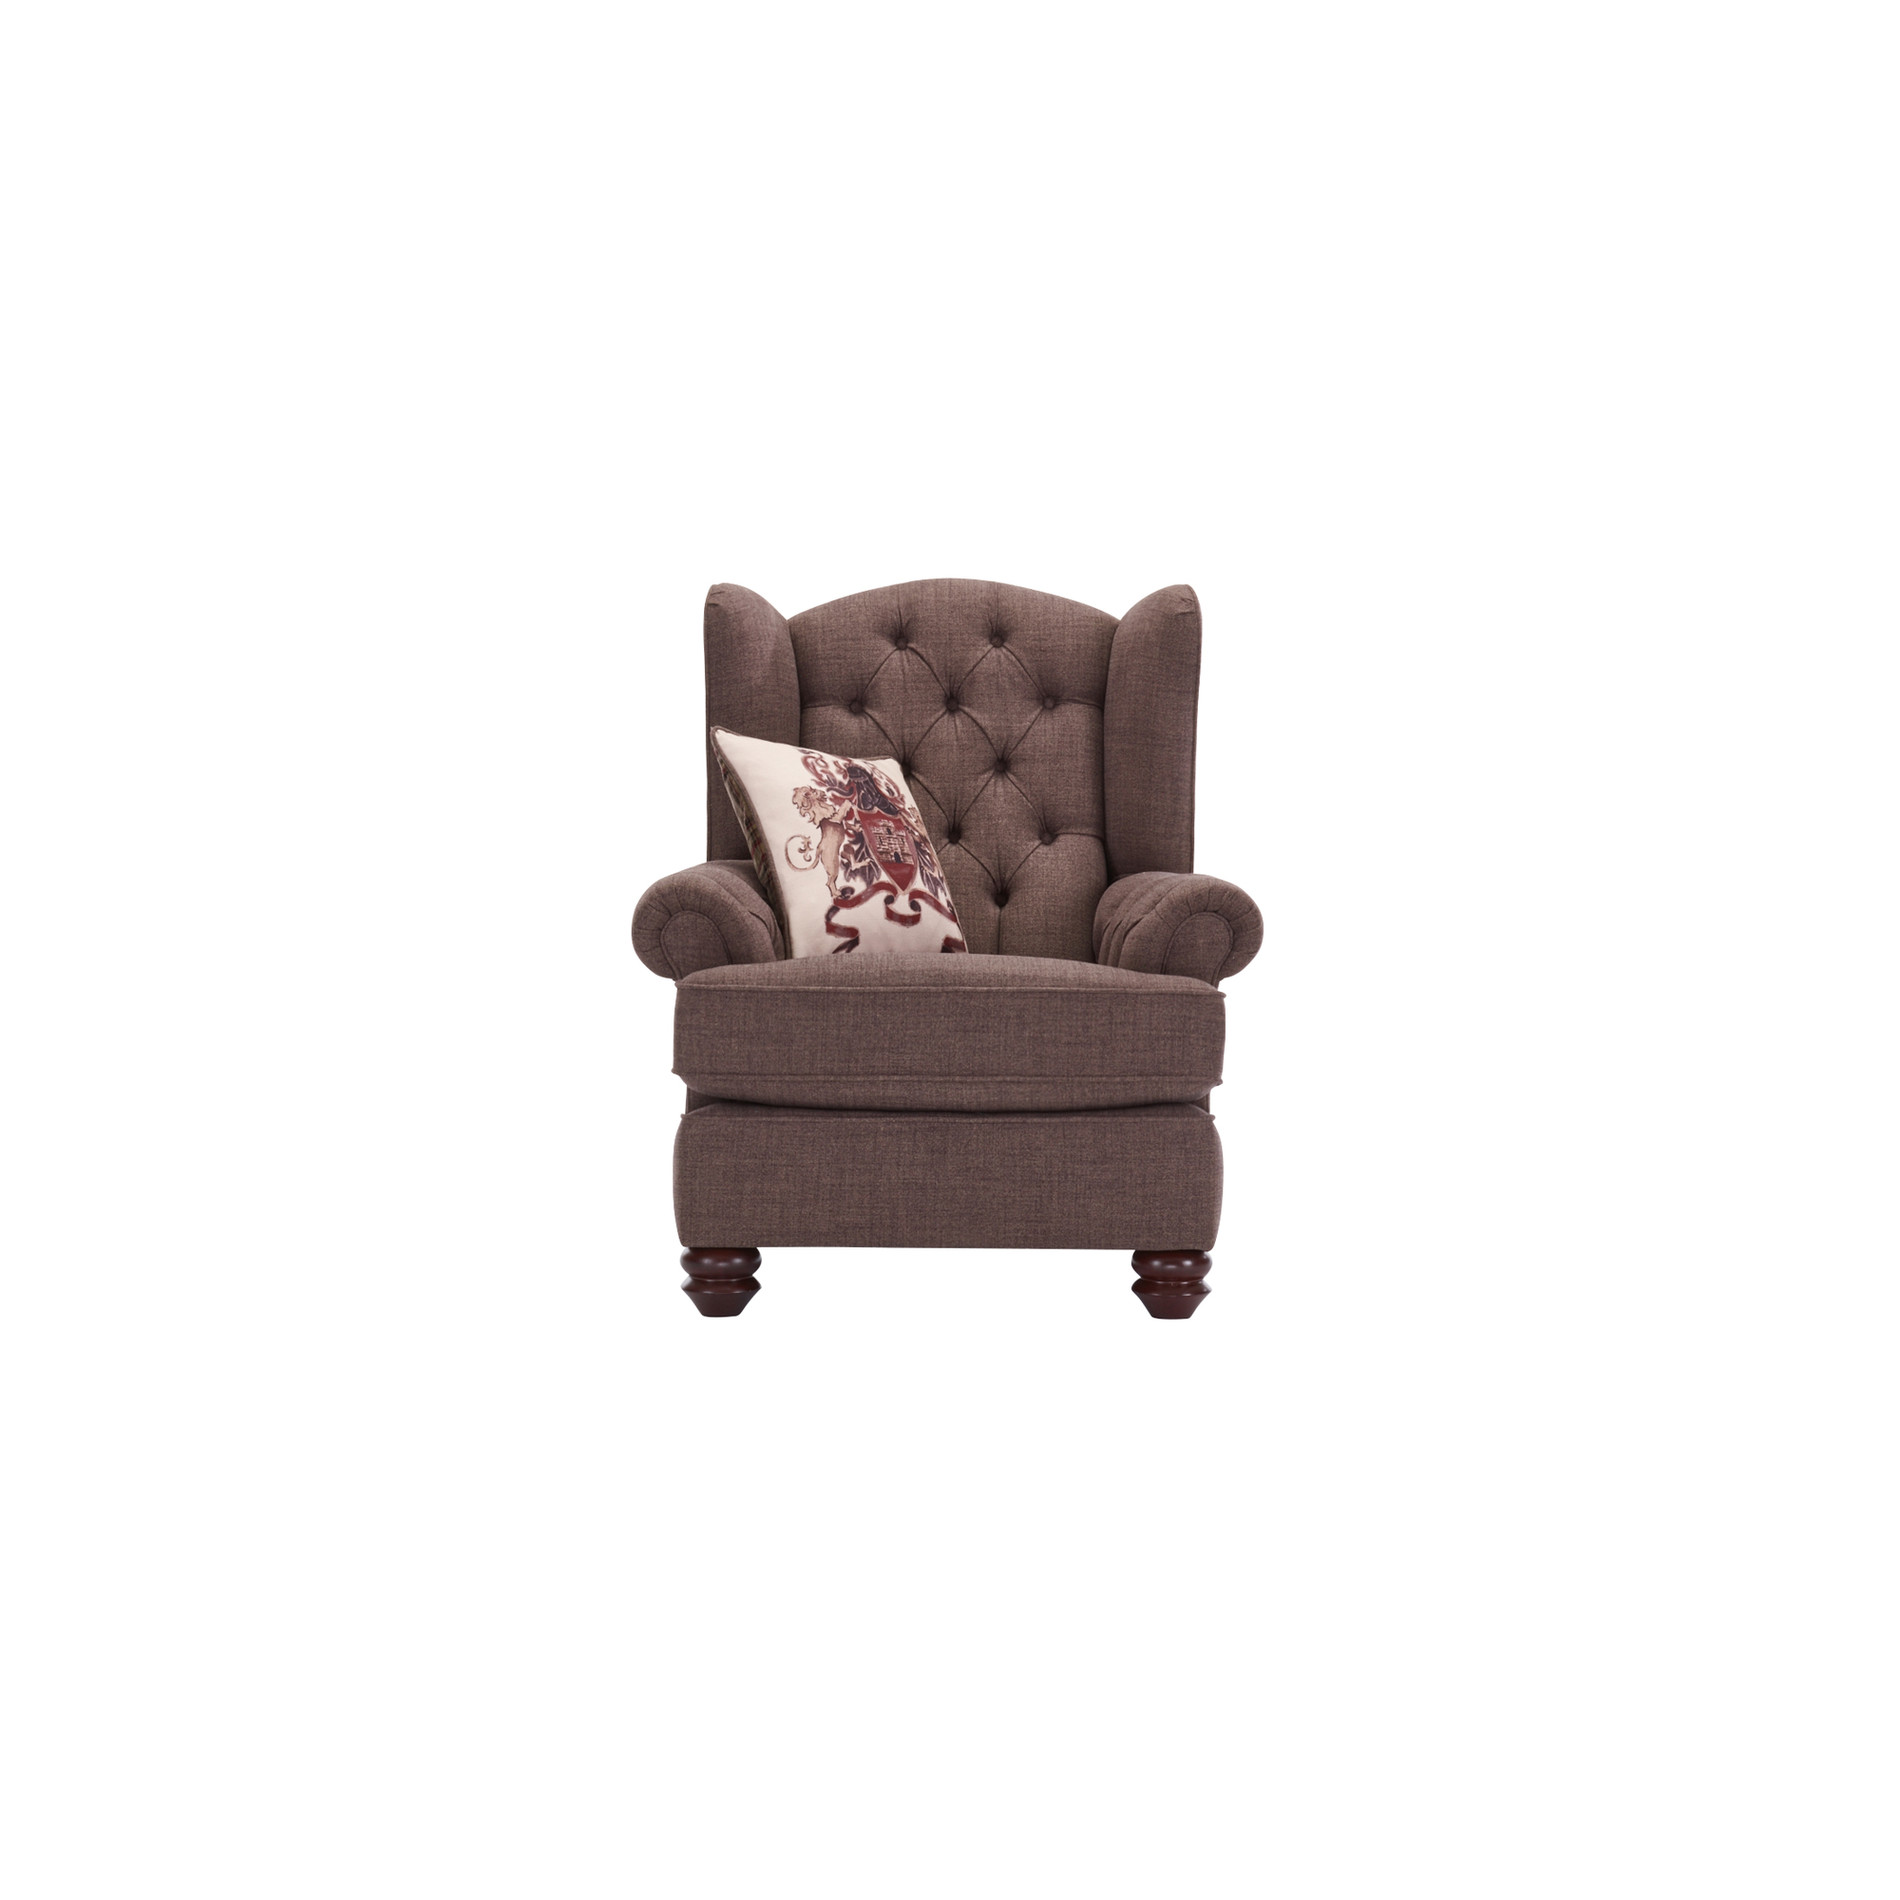 Sandringham Wing Chair in Brown Beige Scatter